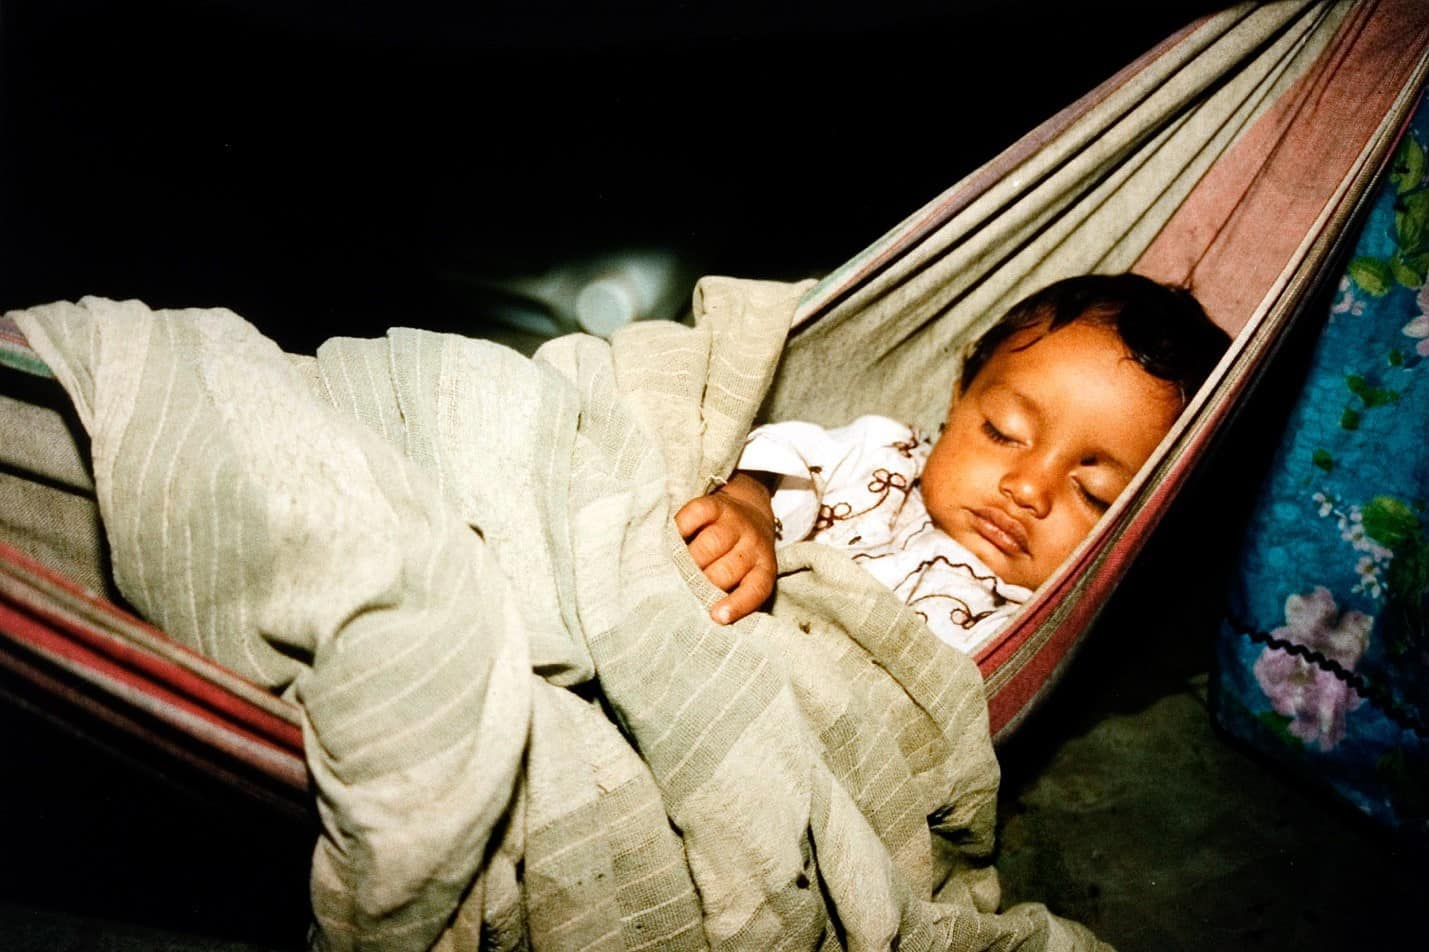 daily mom parent portal are baby hammocks safe for babies 2 1